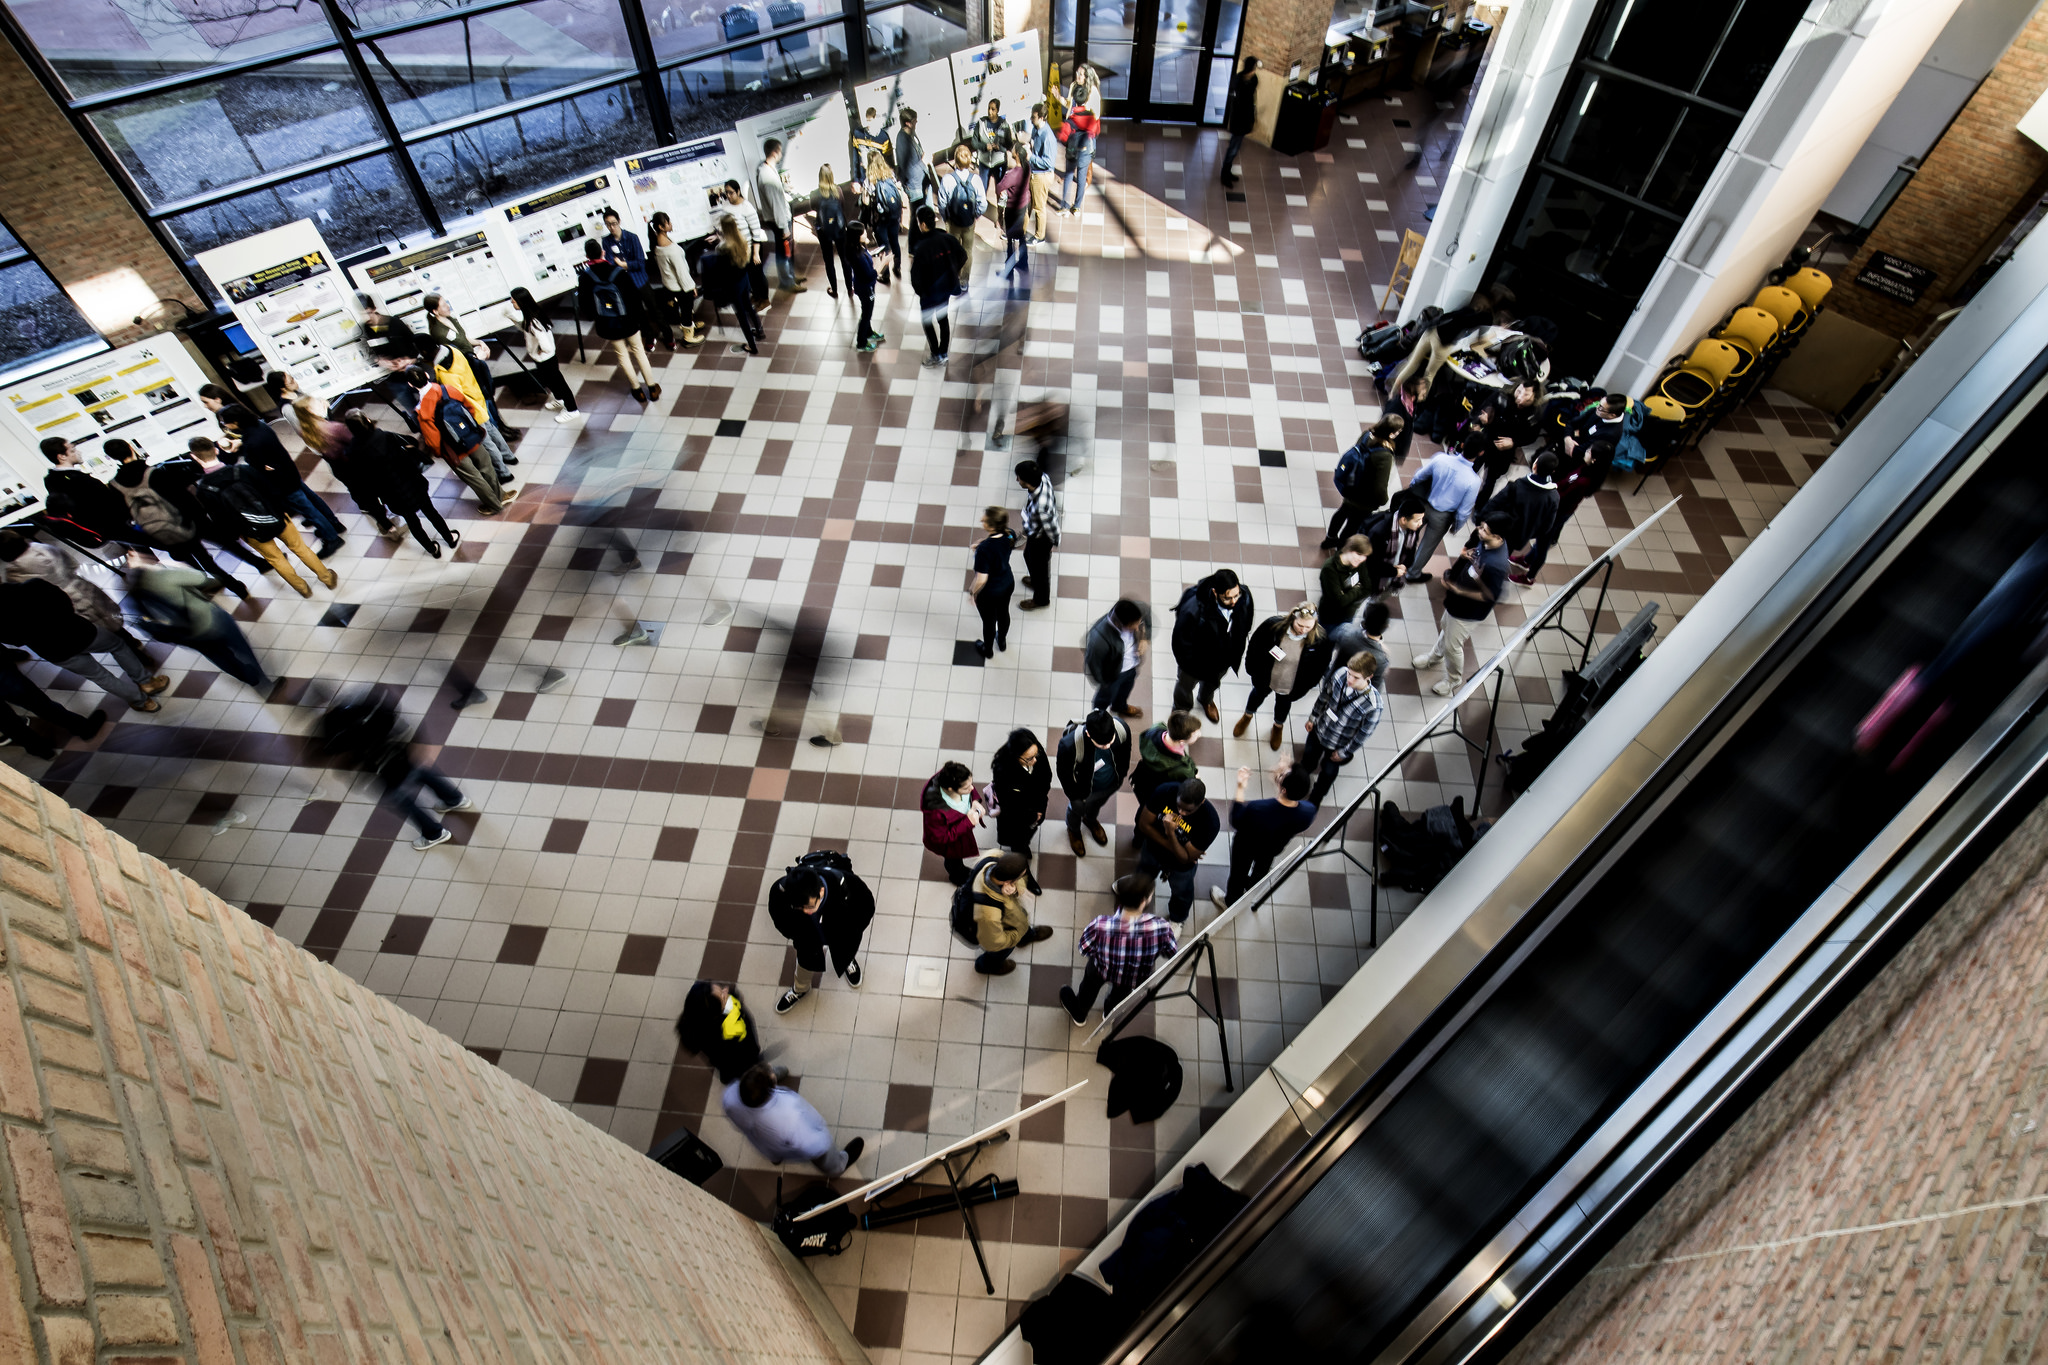 Birds-eye view of diverse students walking in atrium past posters